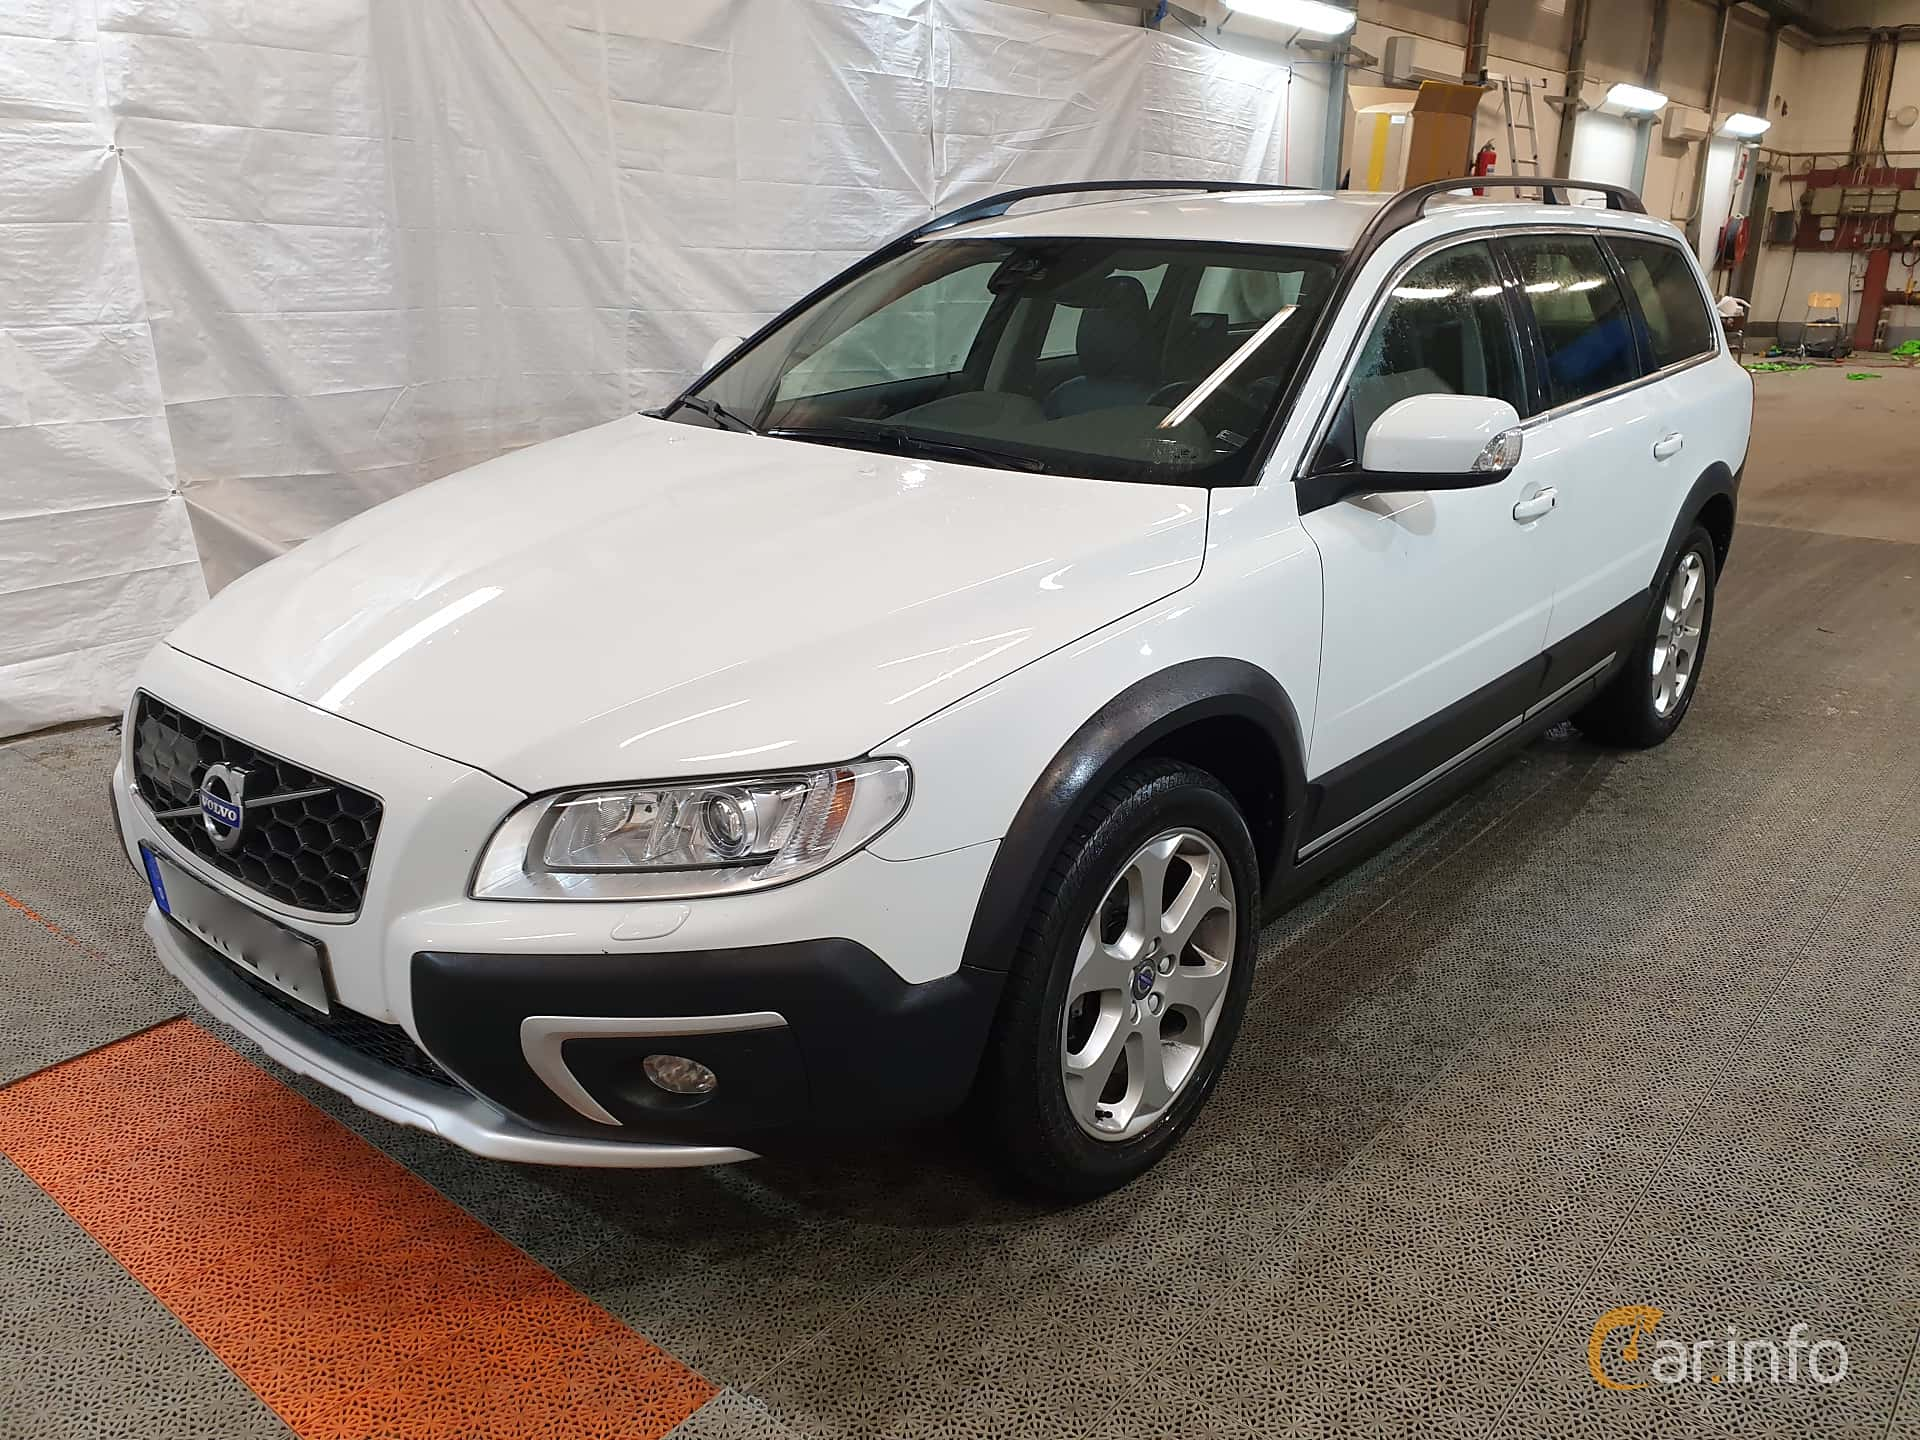 Volvo XC70 D4 AWD Geartronic, 181hp, 2016